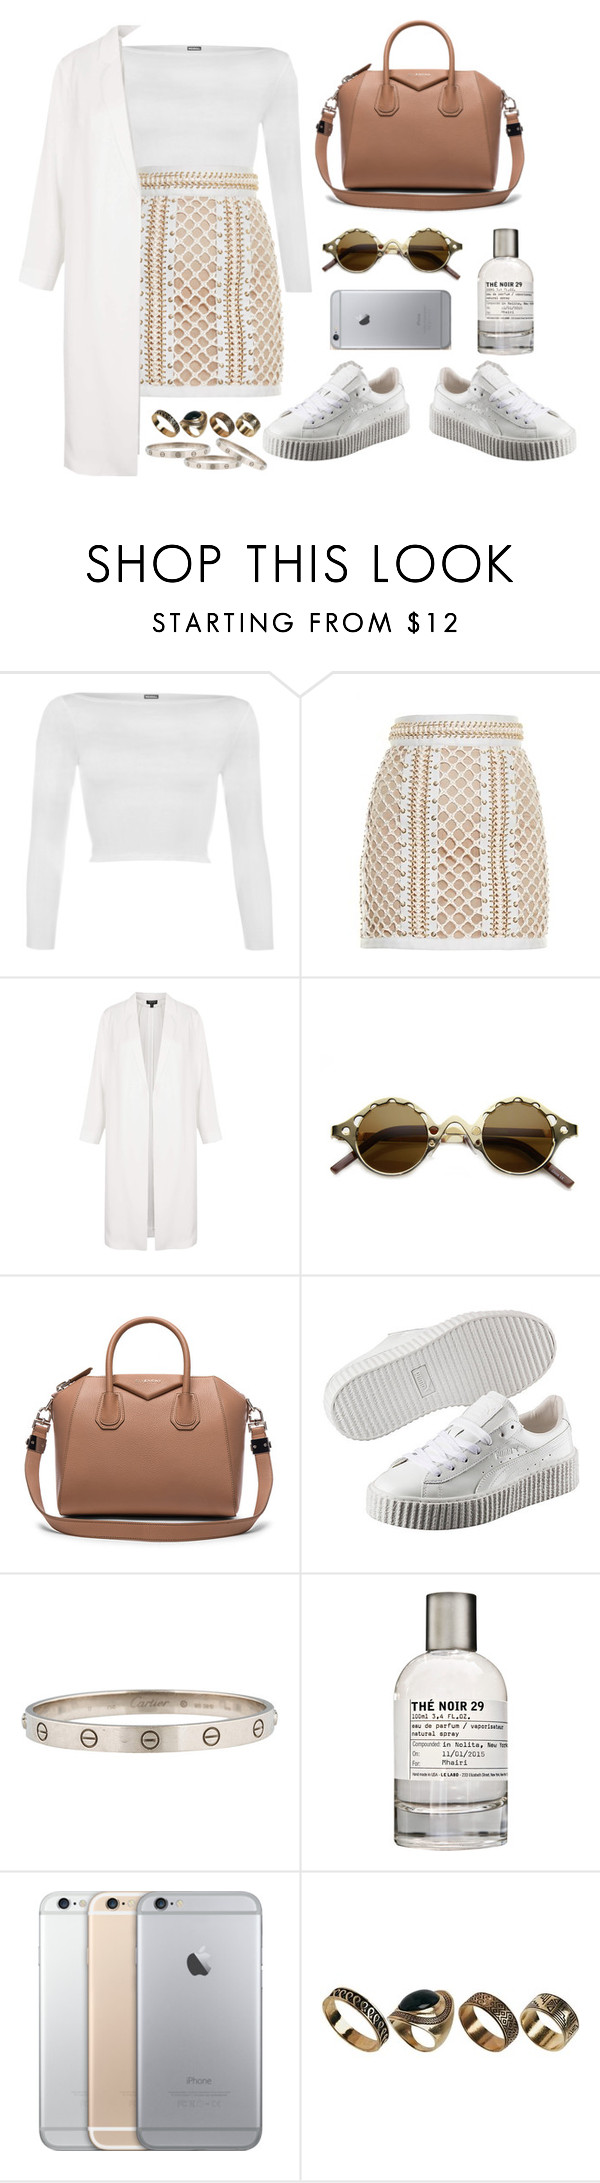 """complicated"" by millicent4 ❤ liked on Polyvore featuring WearAll, Balmain, Topshop, Givenchy, Puma, Le Labo and ALDO"